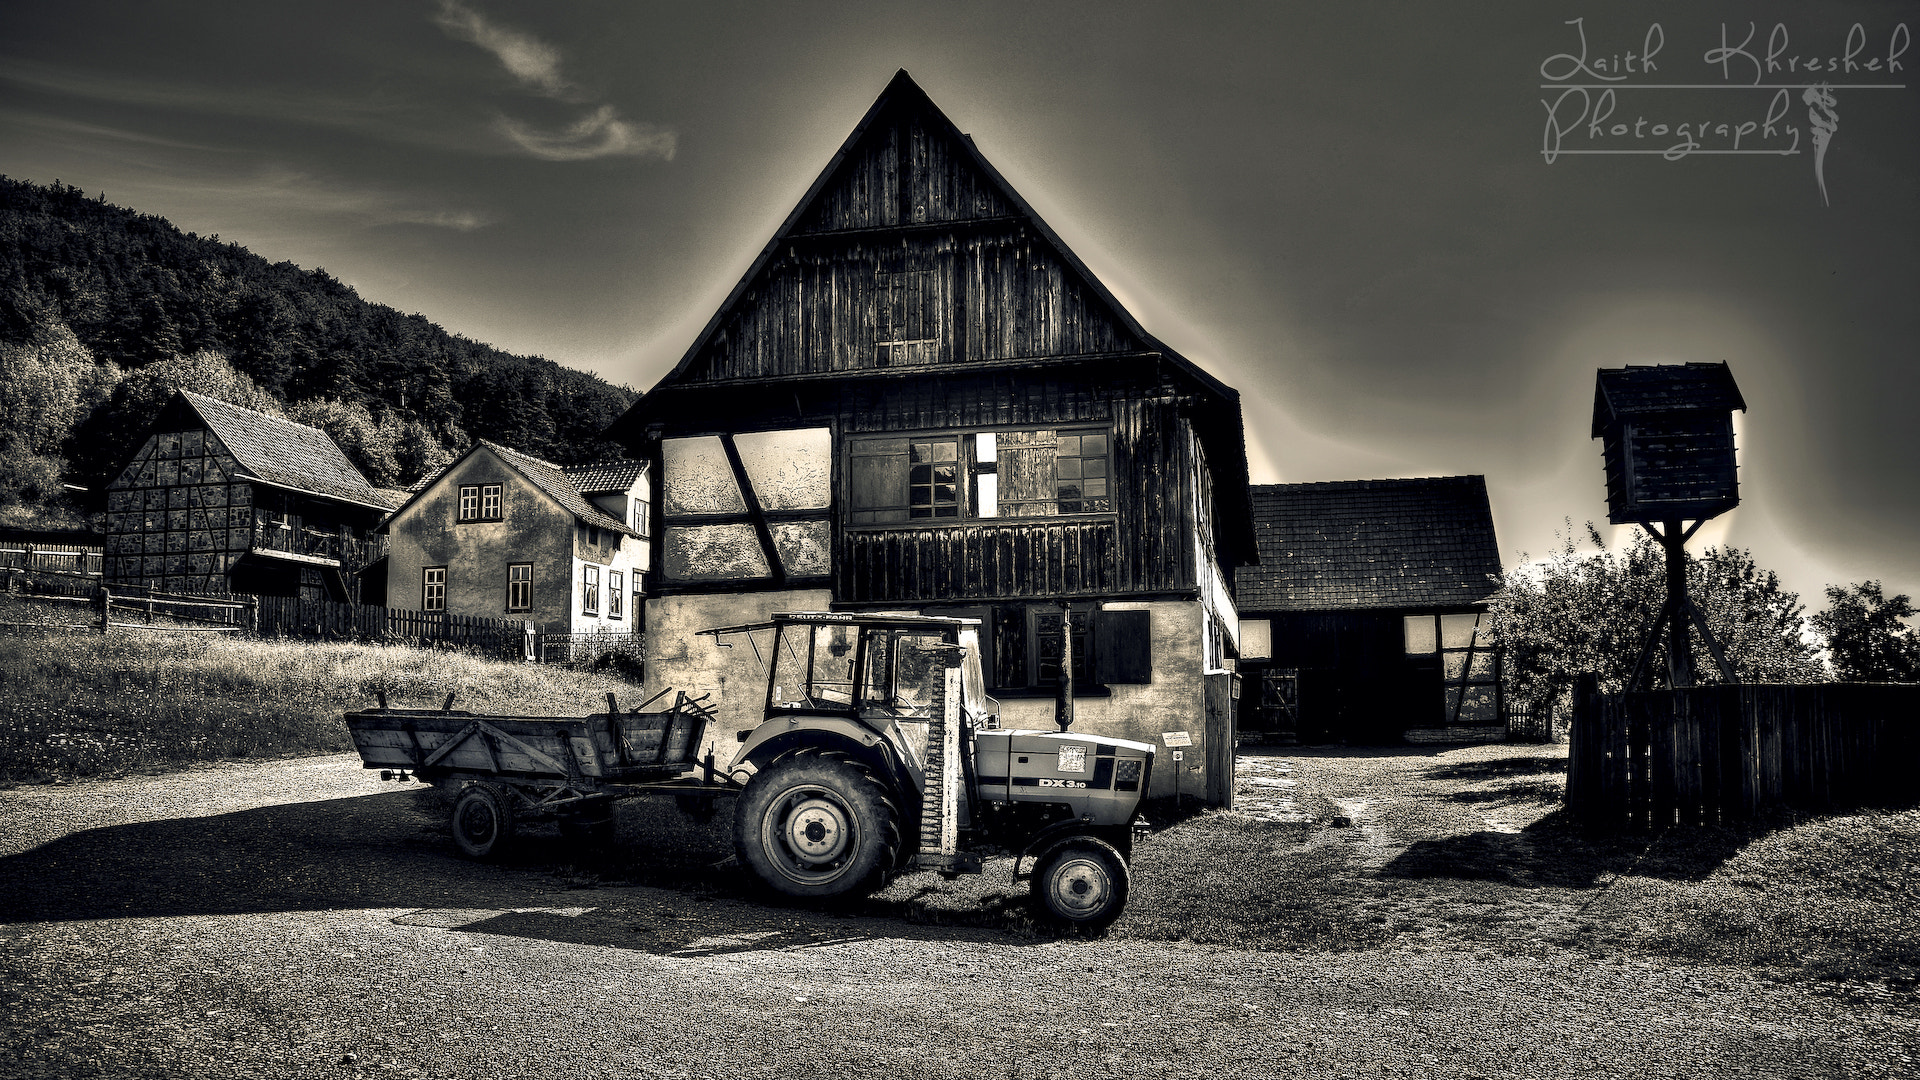 Photograph The Old Days by Laith Khresheh on 500px